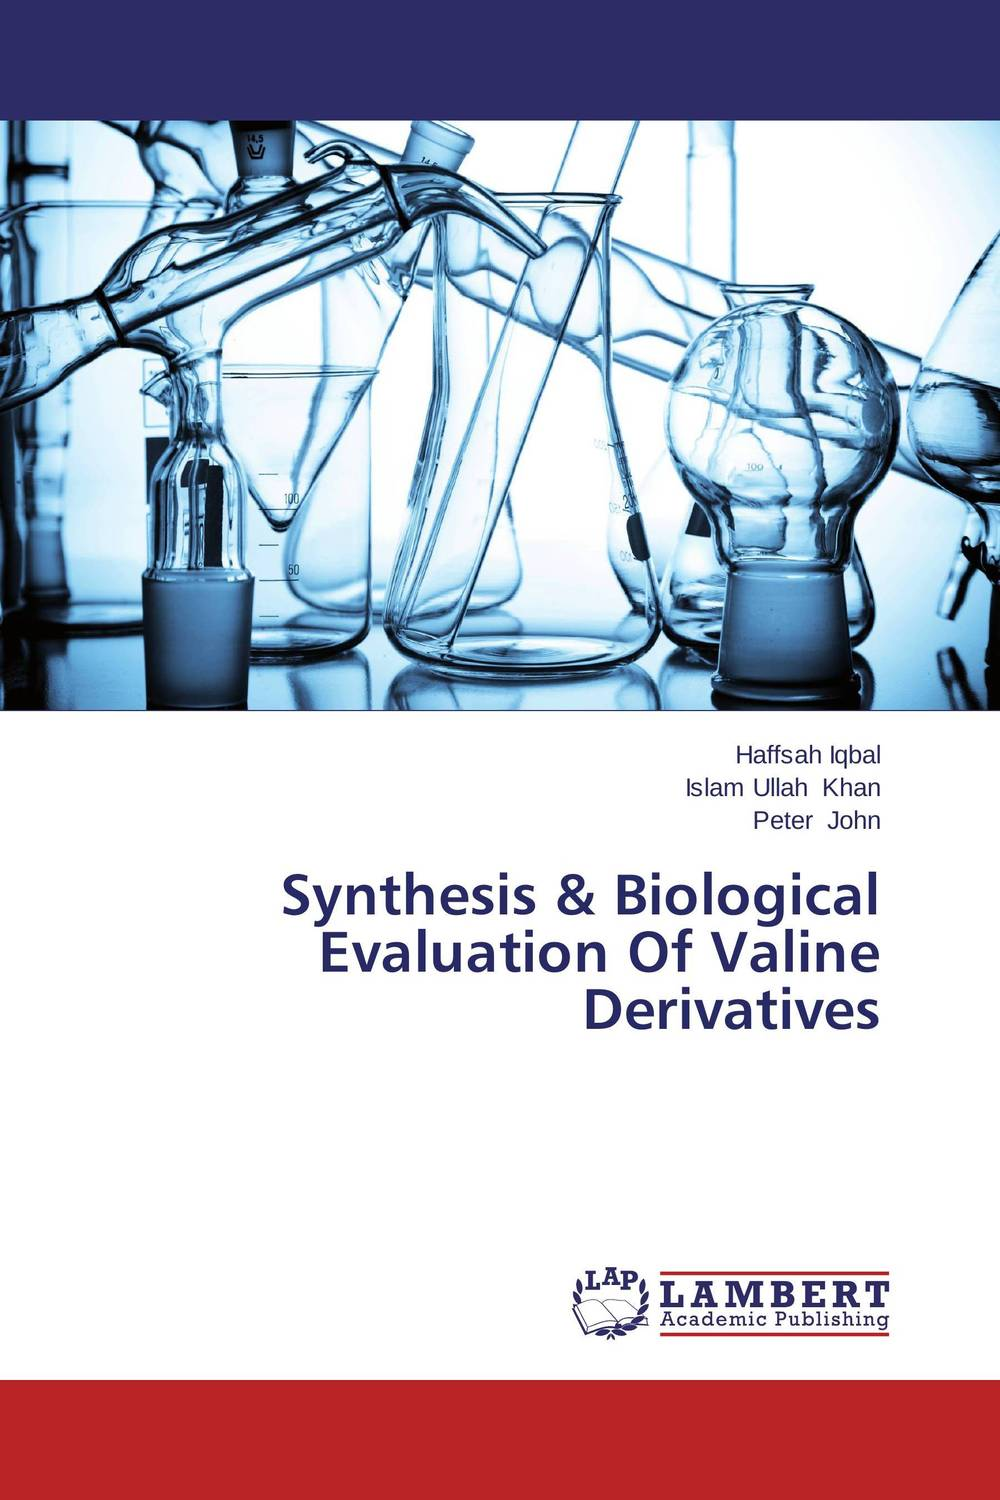 Synthesis & Biological Evaluation Of Valine Derivatives the role of evaluation as a mechanism for advancing principal practice